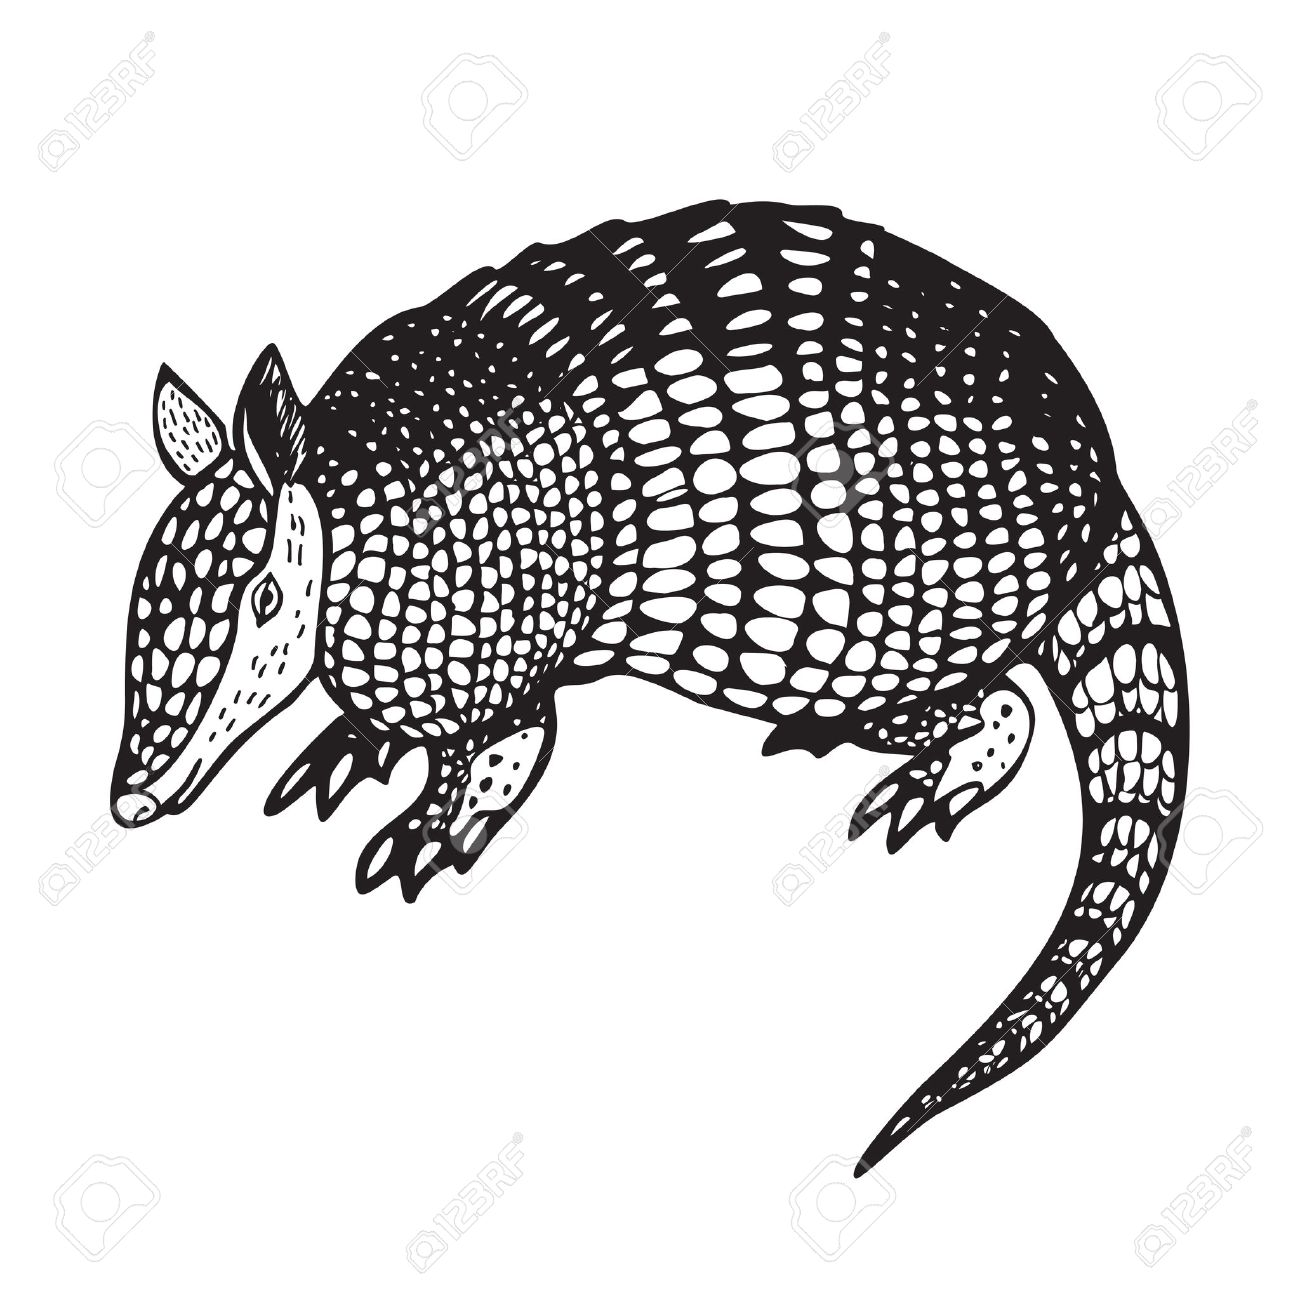 Armadillo clipart black and white 3 » Clipart Station.